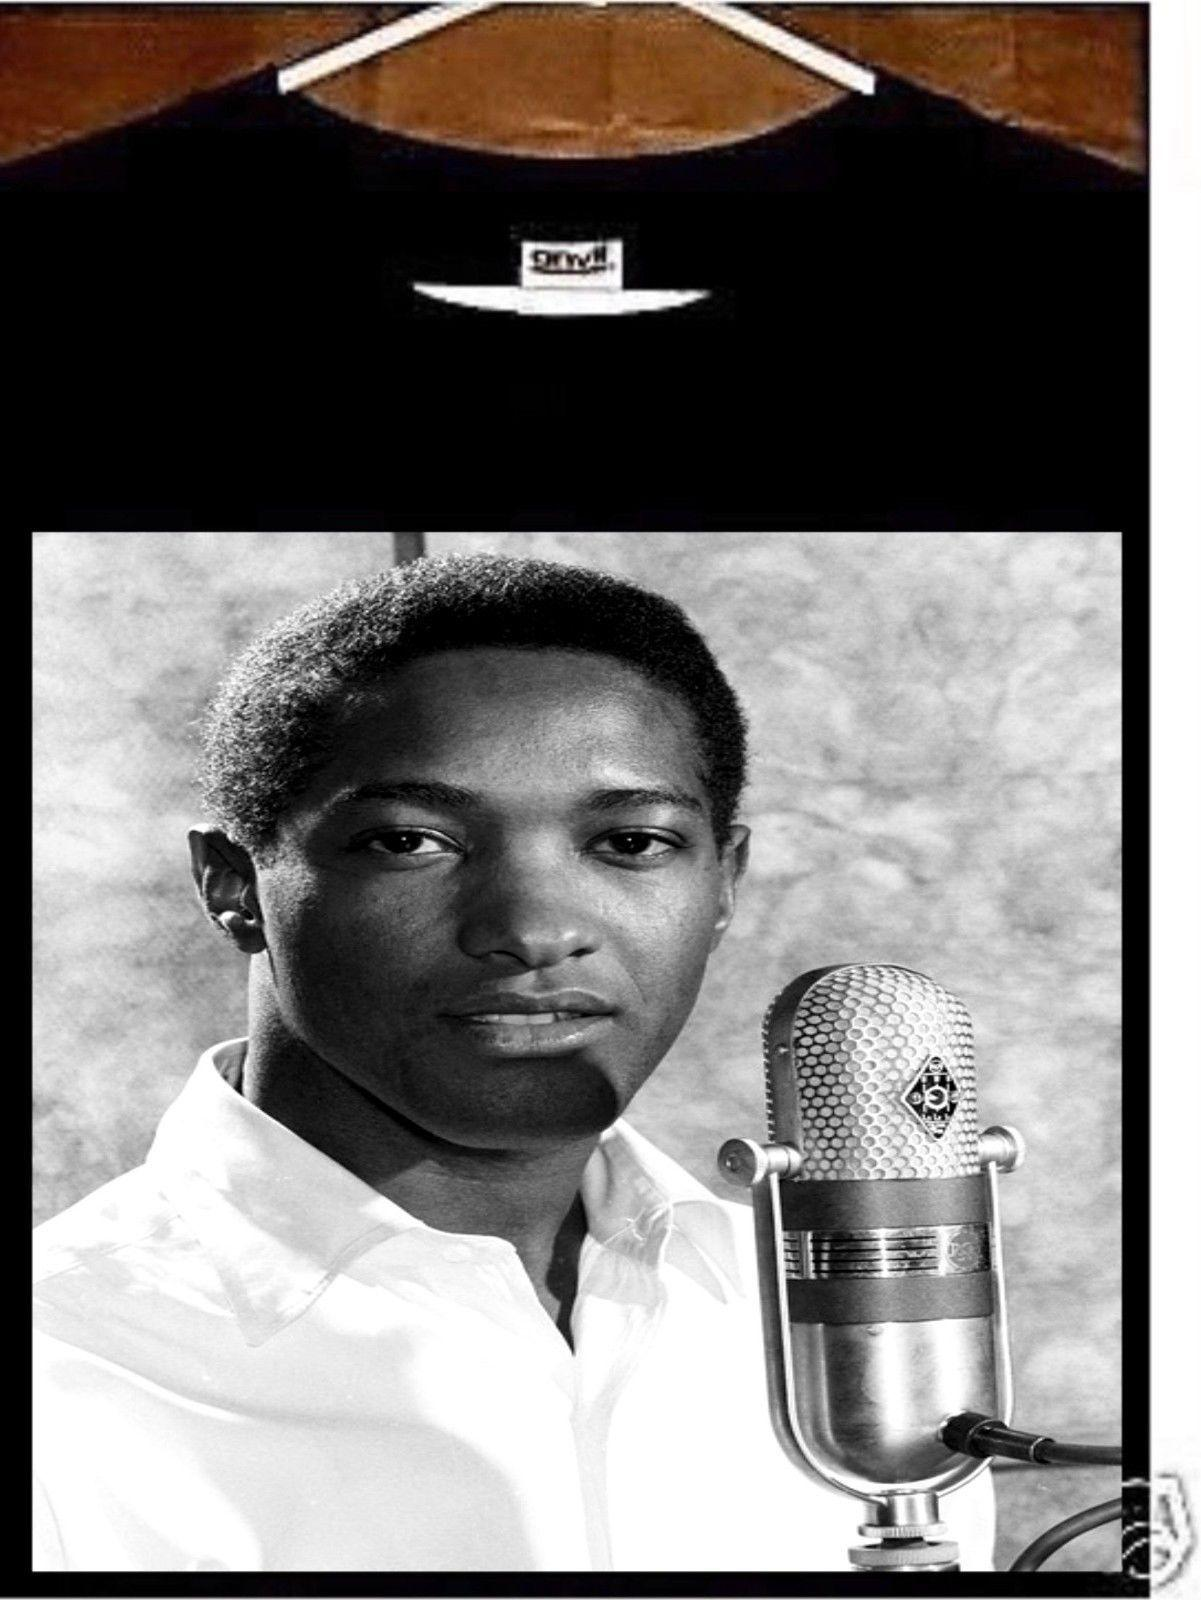 Camisa de Sam Cooke T; Sam Cooke Camiseta tamanho Discout Hot Novo Tshirt Trump sweat sporter t-shirt